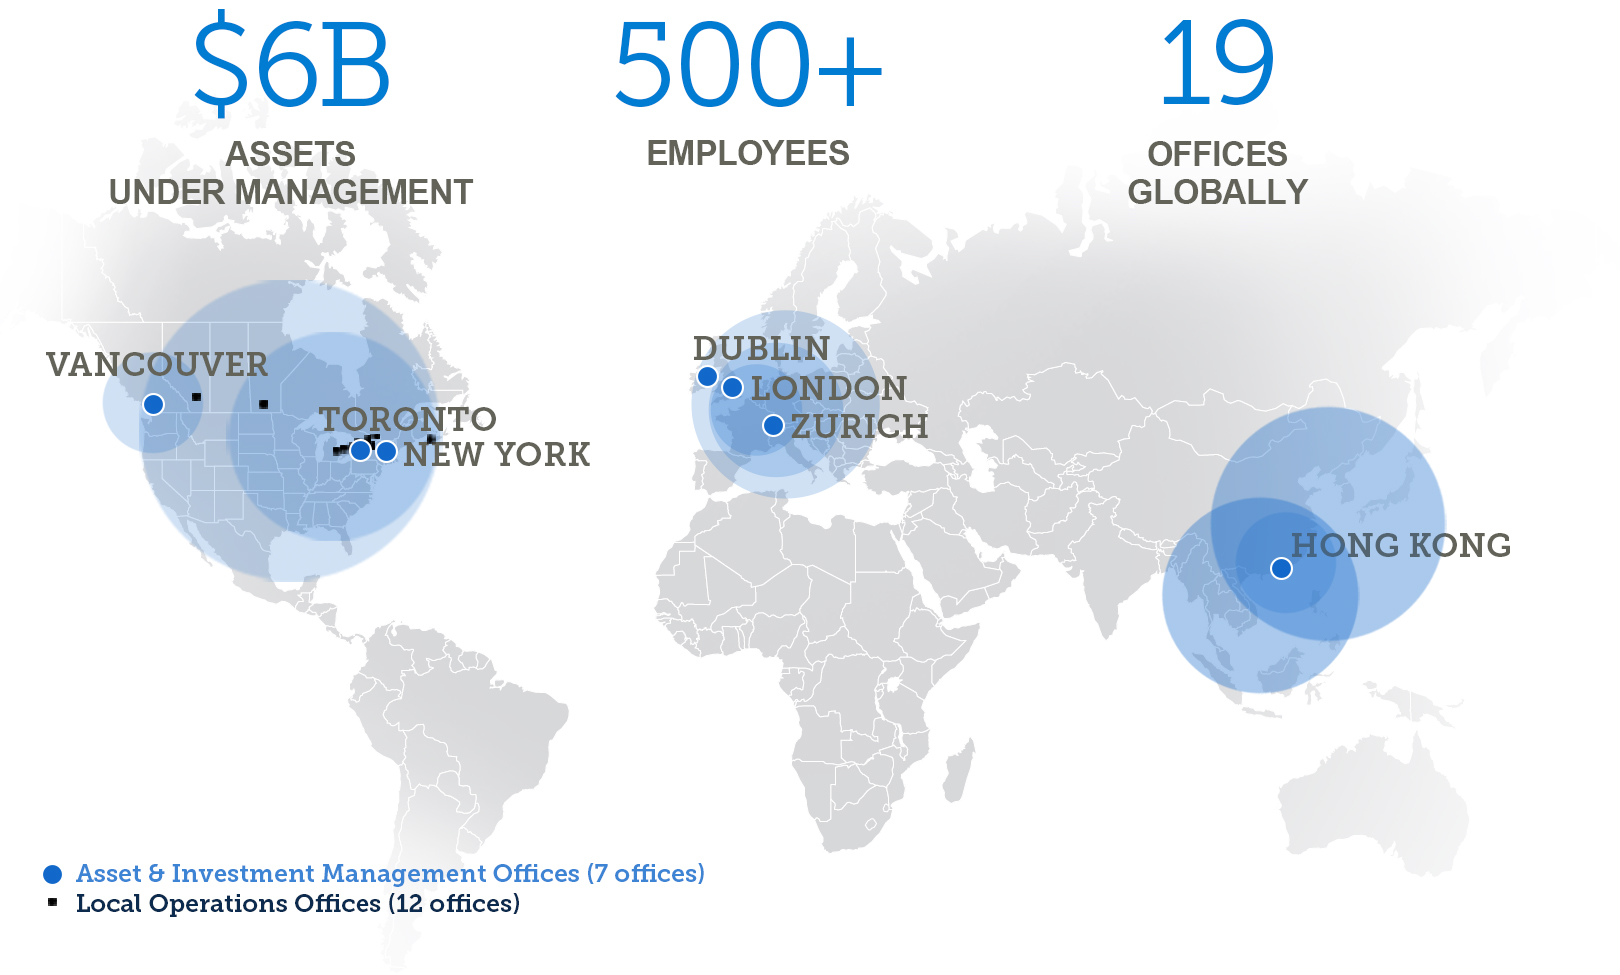 $6B Assets Under Management, 500+ Employees, 19 Office Globally including Vancouver, Toronto, New York, Dublin, London, Zurich, Hong Kong